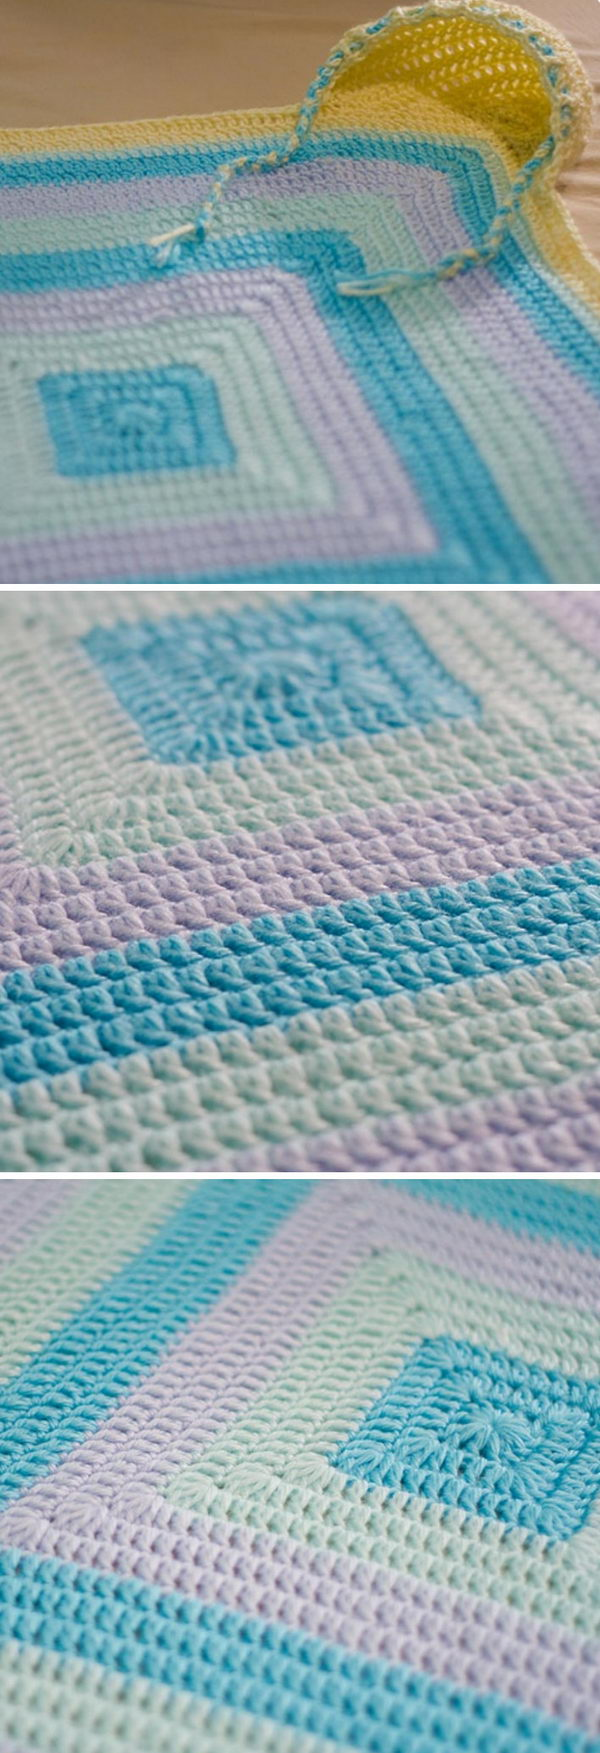 Colorful Hooded Baby Blanket.